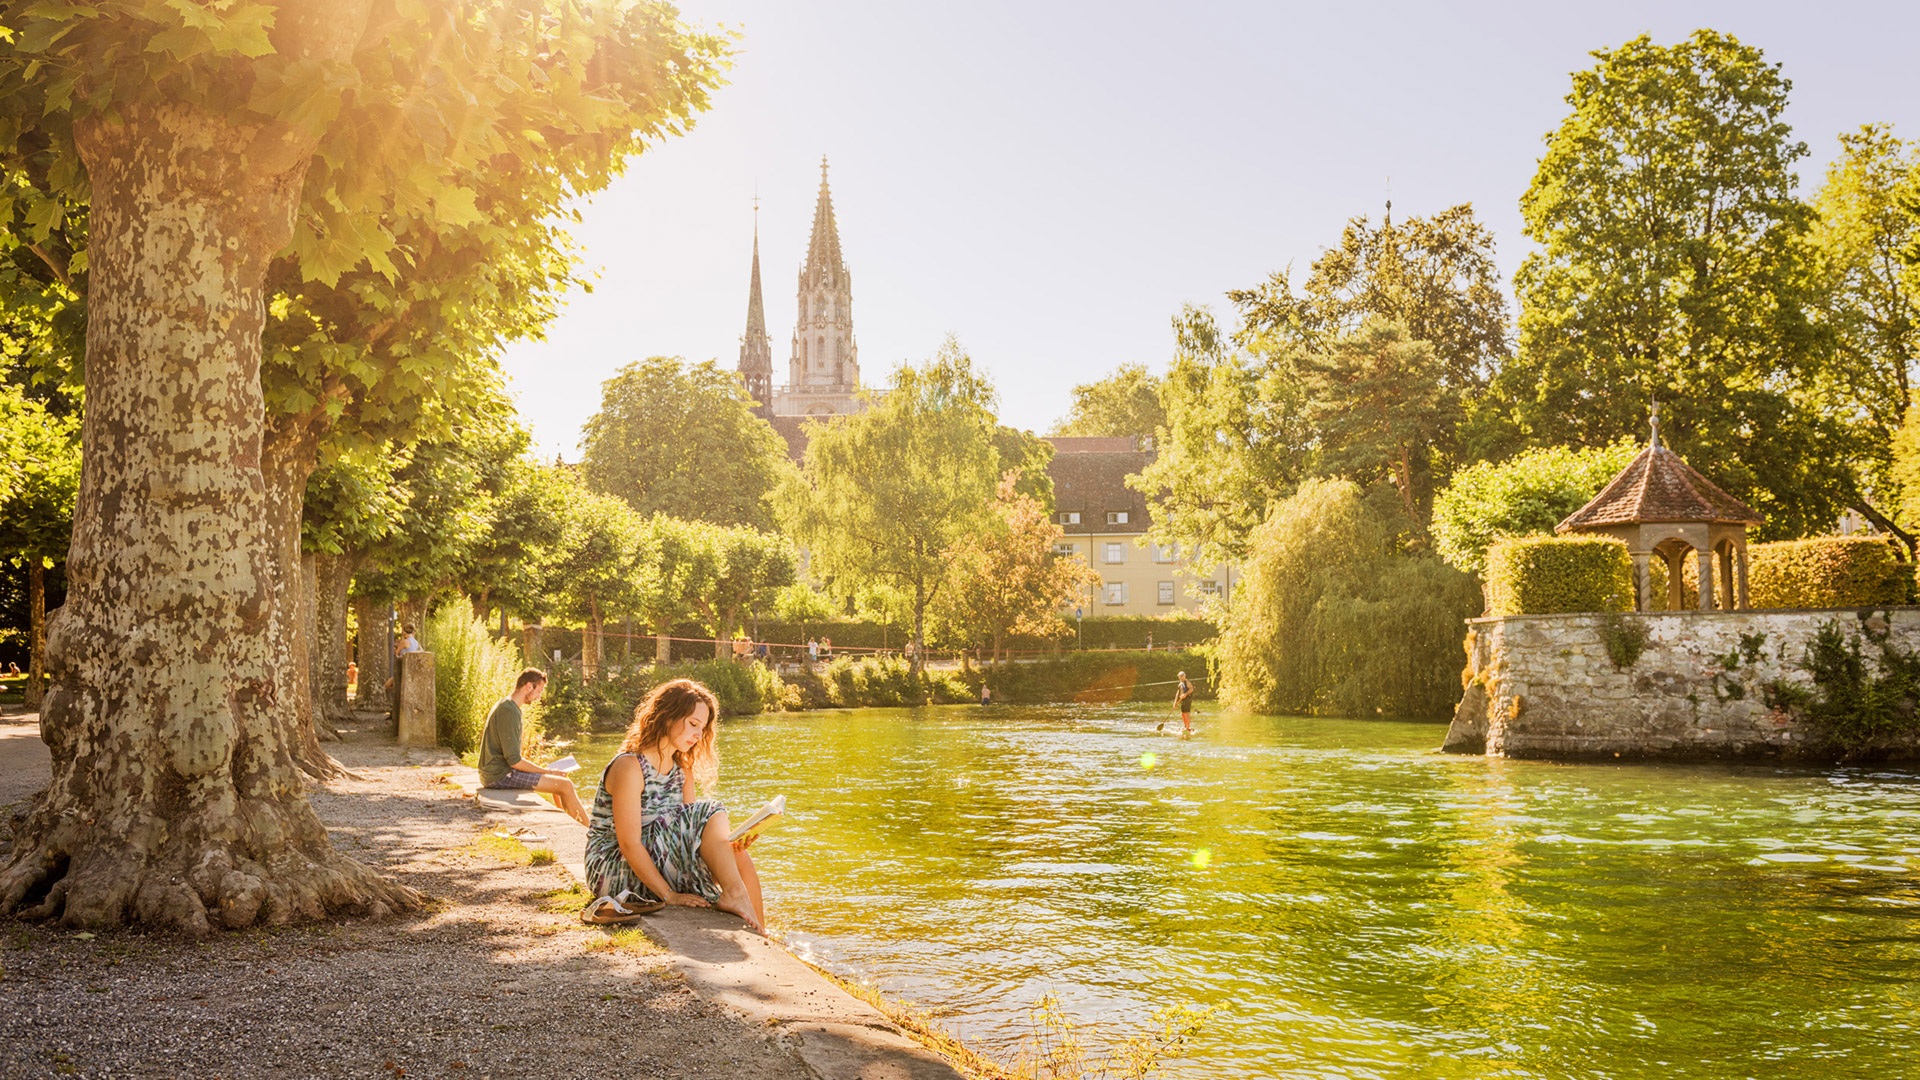 Summer, sun and leisure activities at Lake Constance